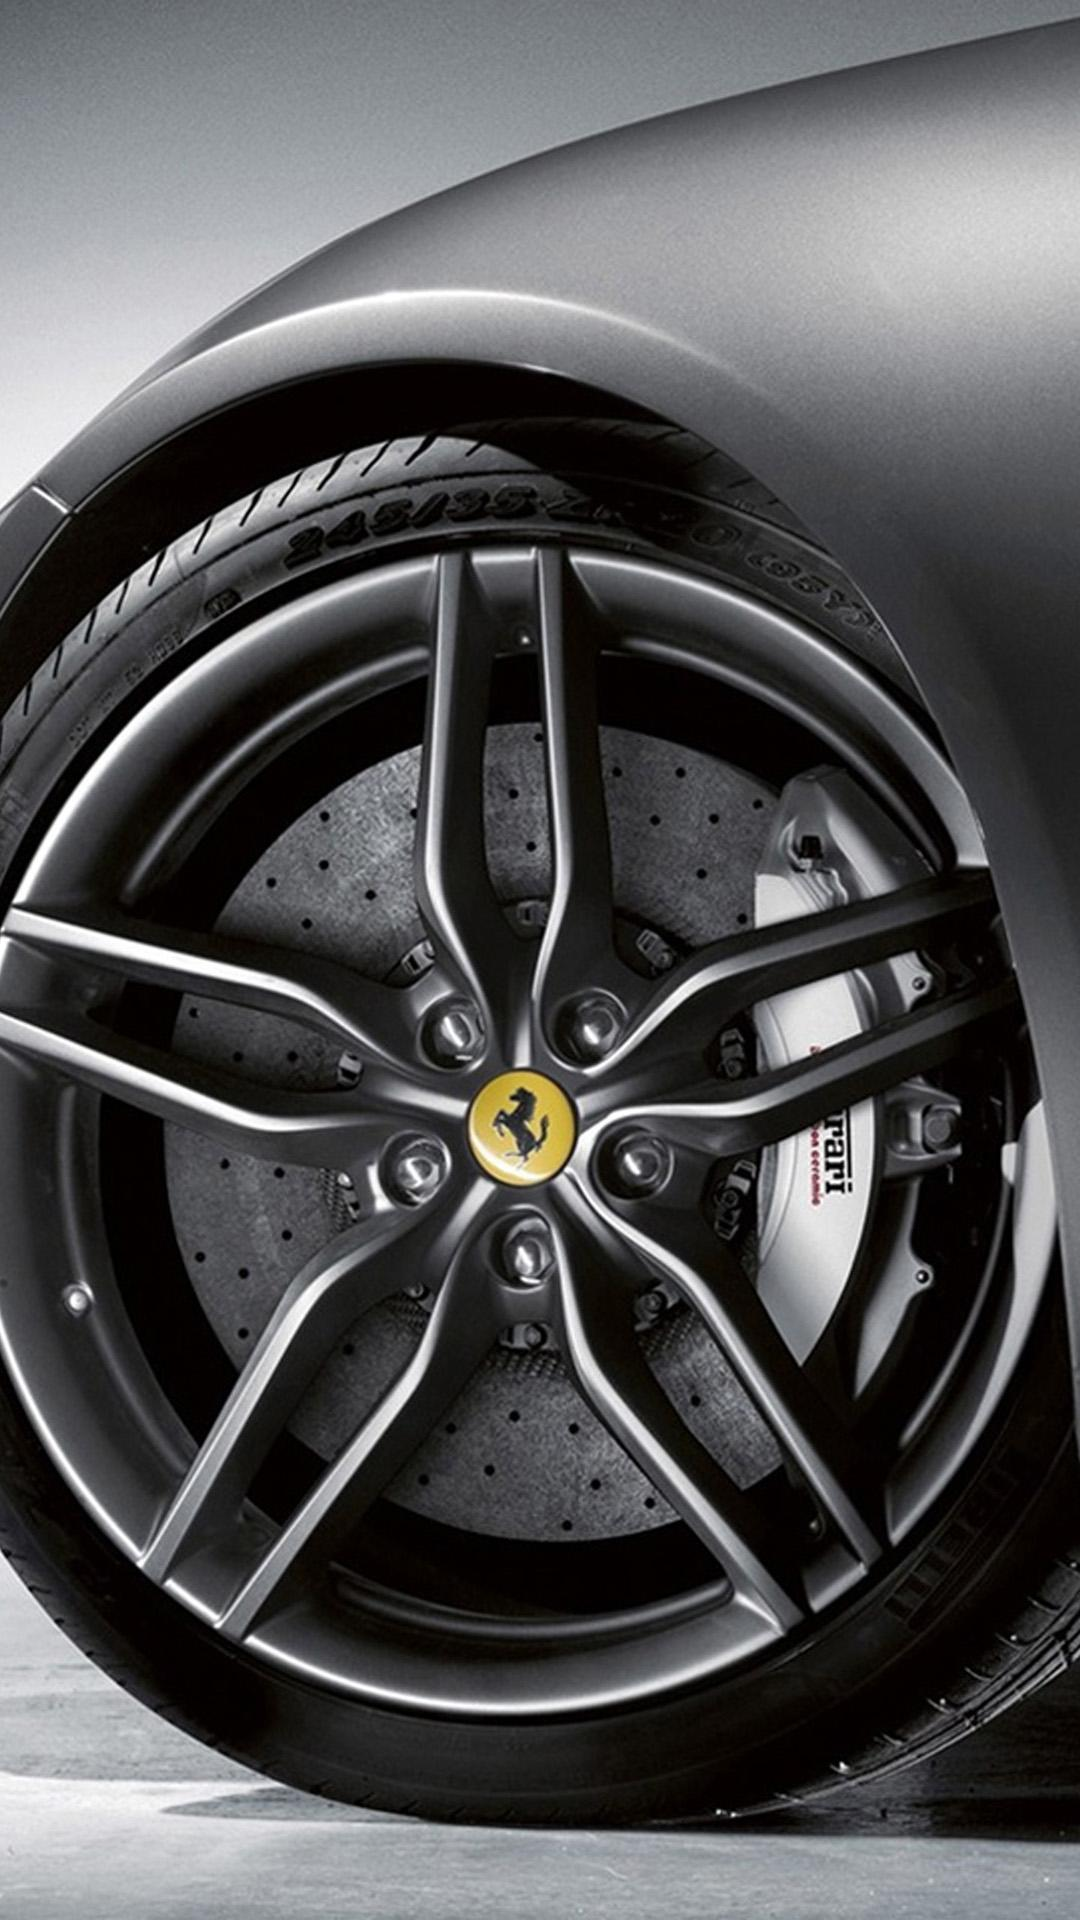 Ferrari Wheel Wallpapers for Galaxy S5